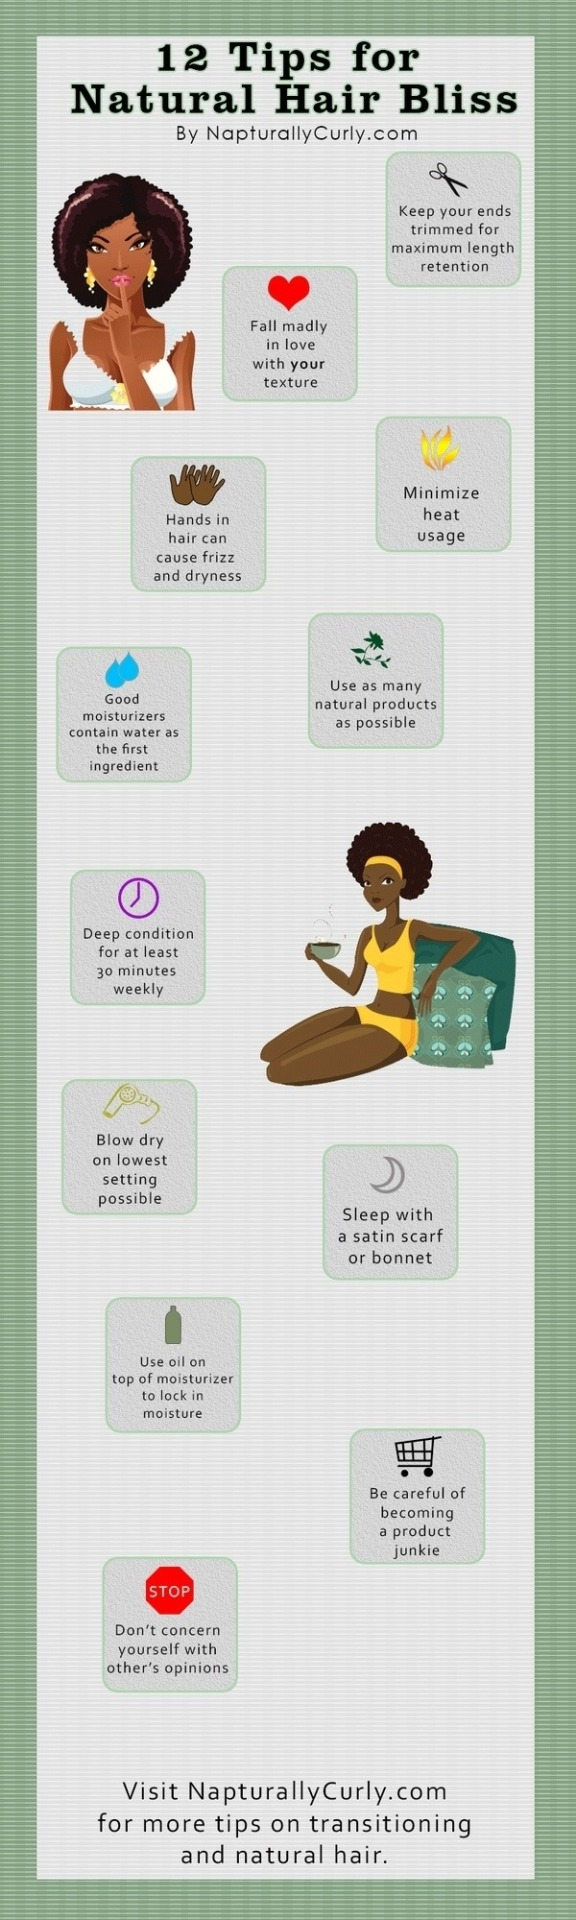 mysydneylife:  12 Tips for Natural Hair Bliss Via Naturallycurly.comView Post